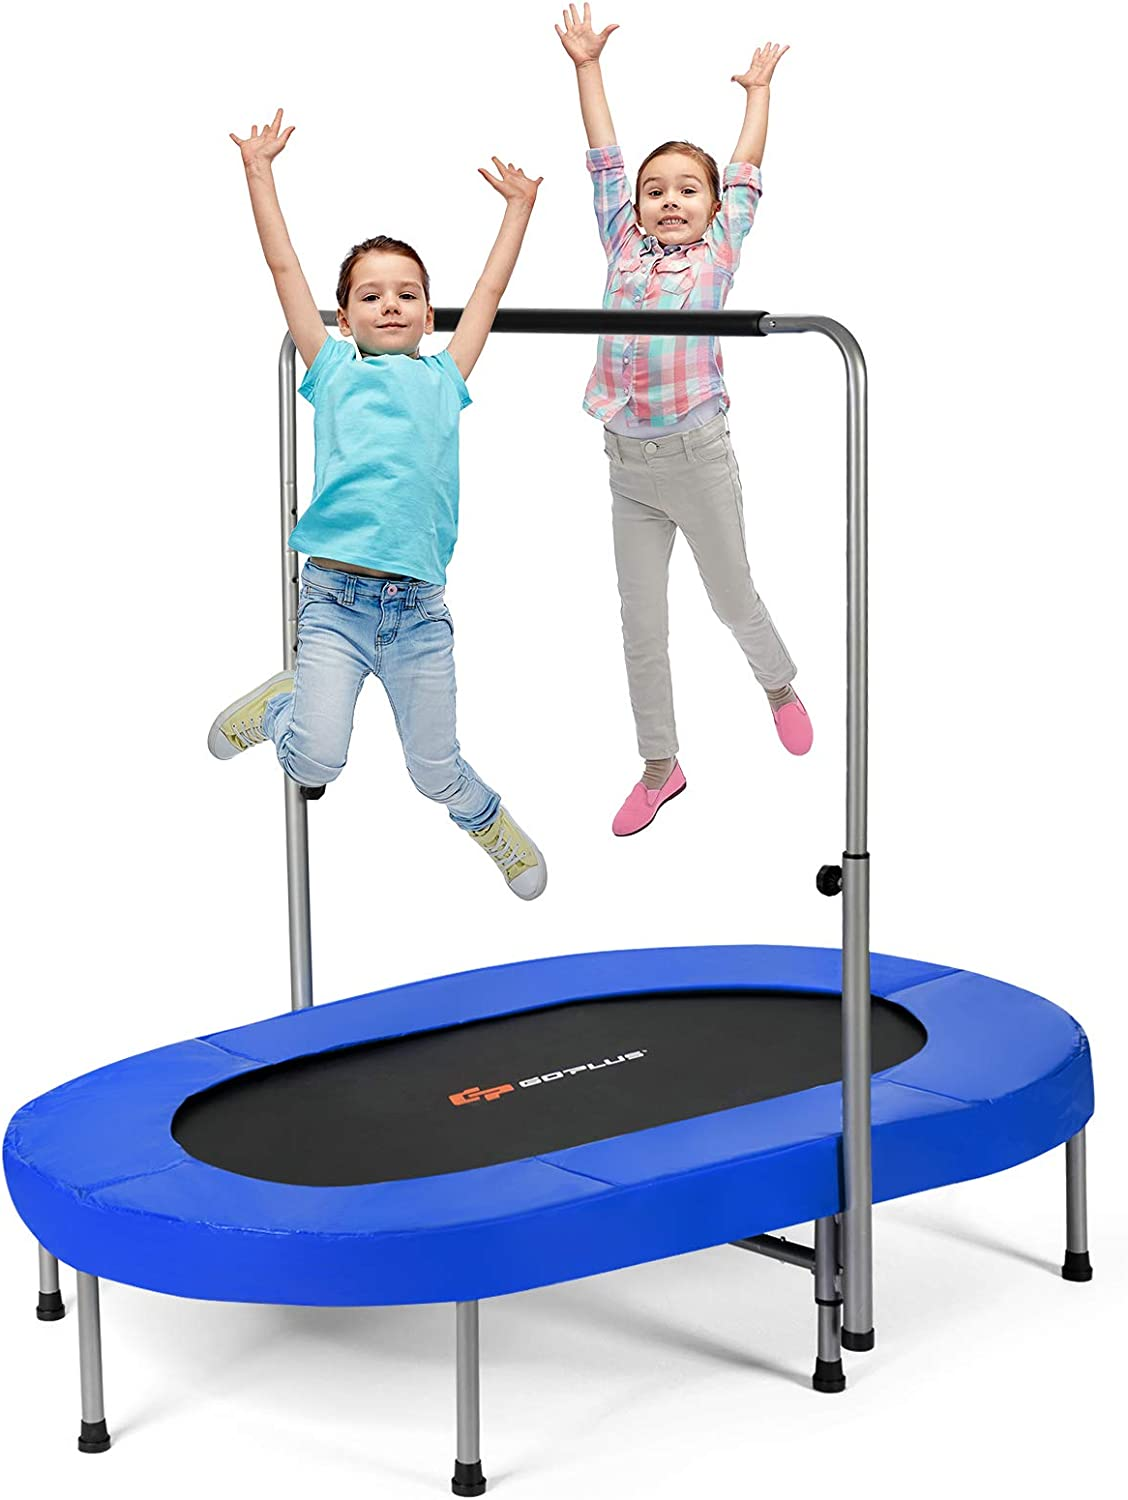 OFFicial site Now free shipping Goplus Foldable Trampoline Double Kids Mini Rebounde